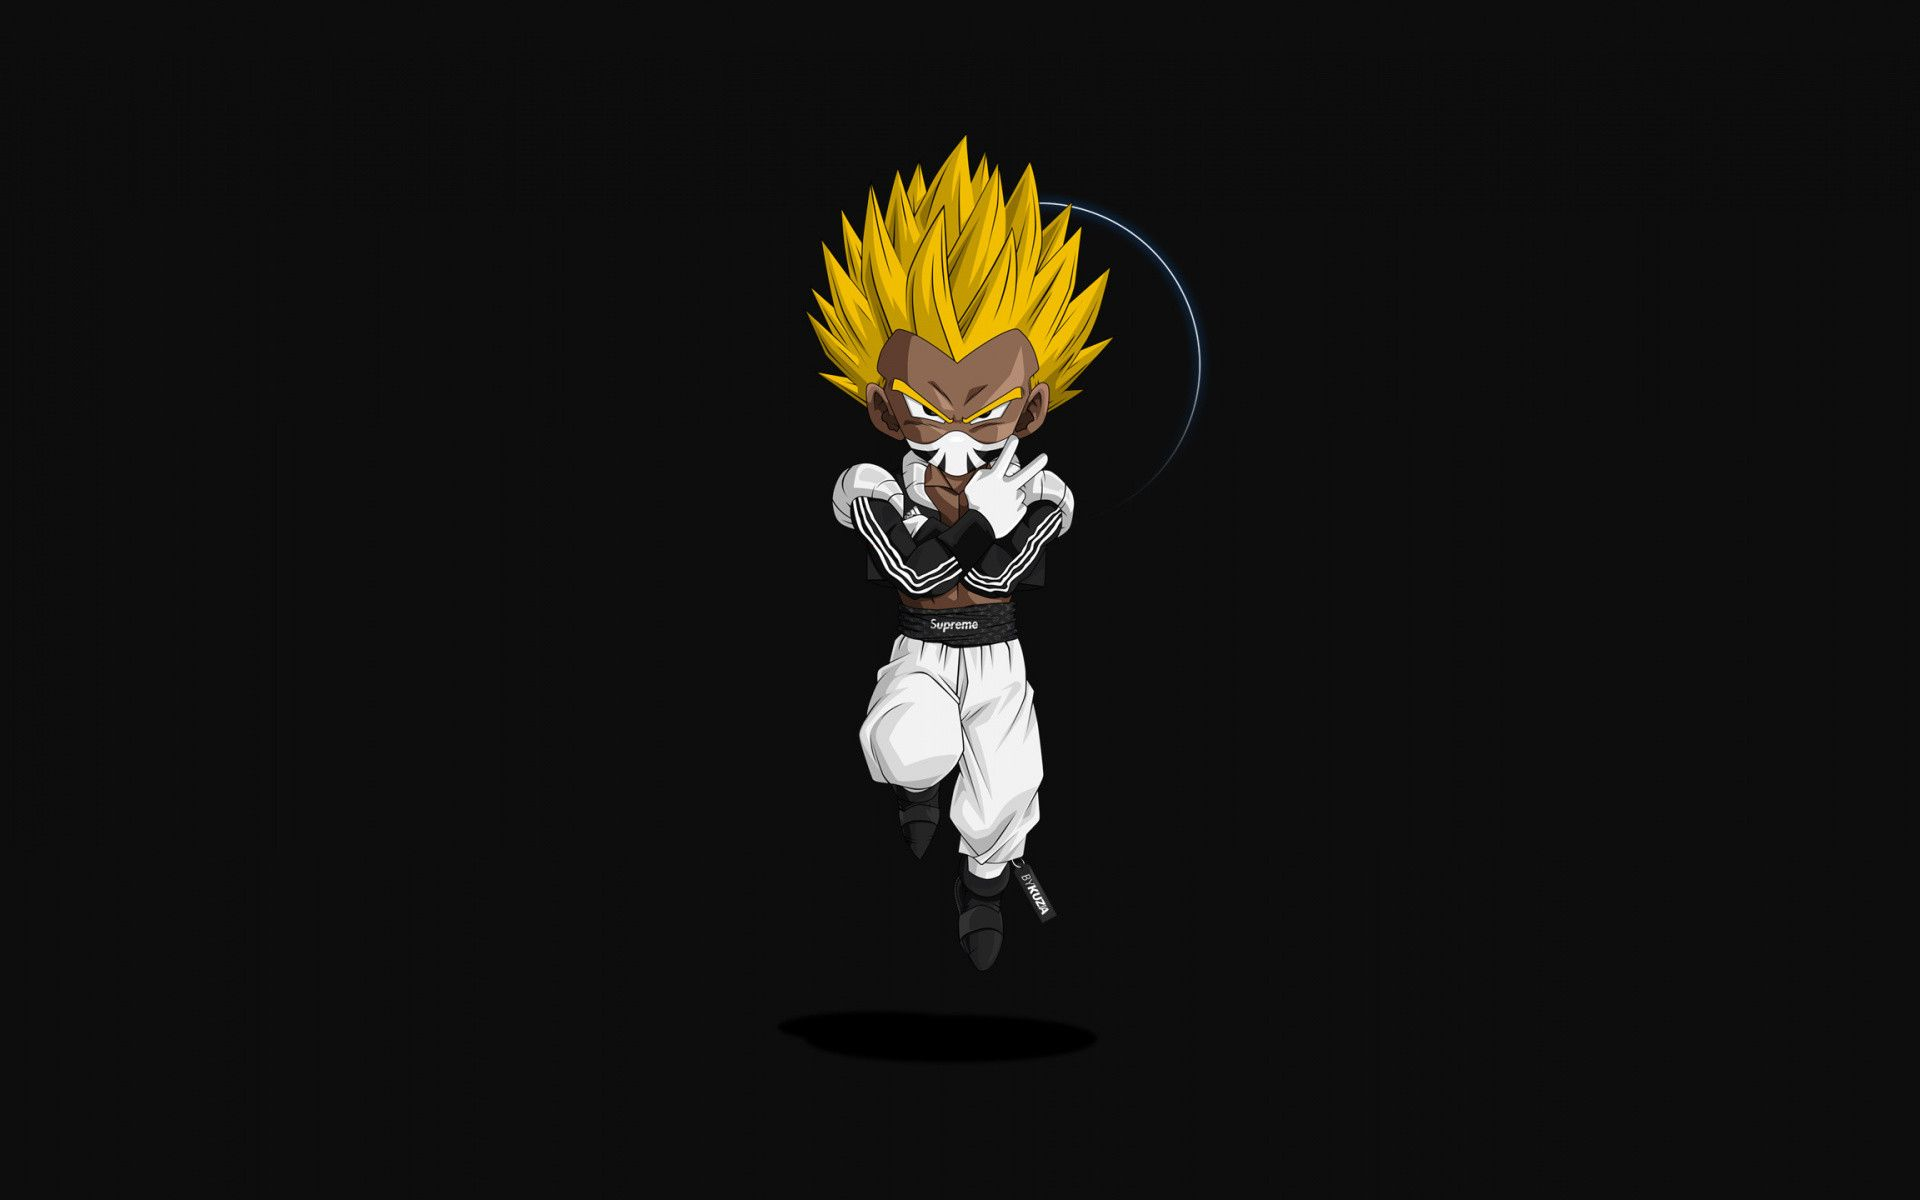 DBZ Supreme Wallpapers   Top DBZ Supreme Backgrounds 1920x1200